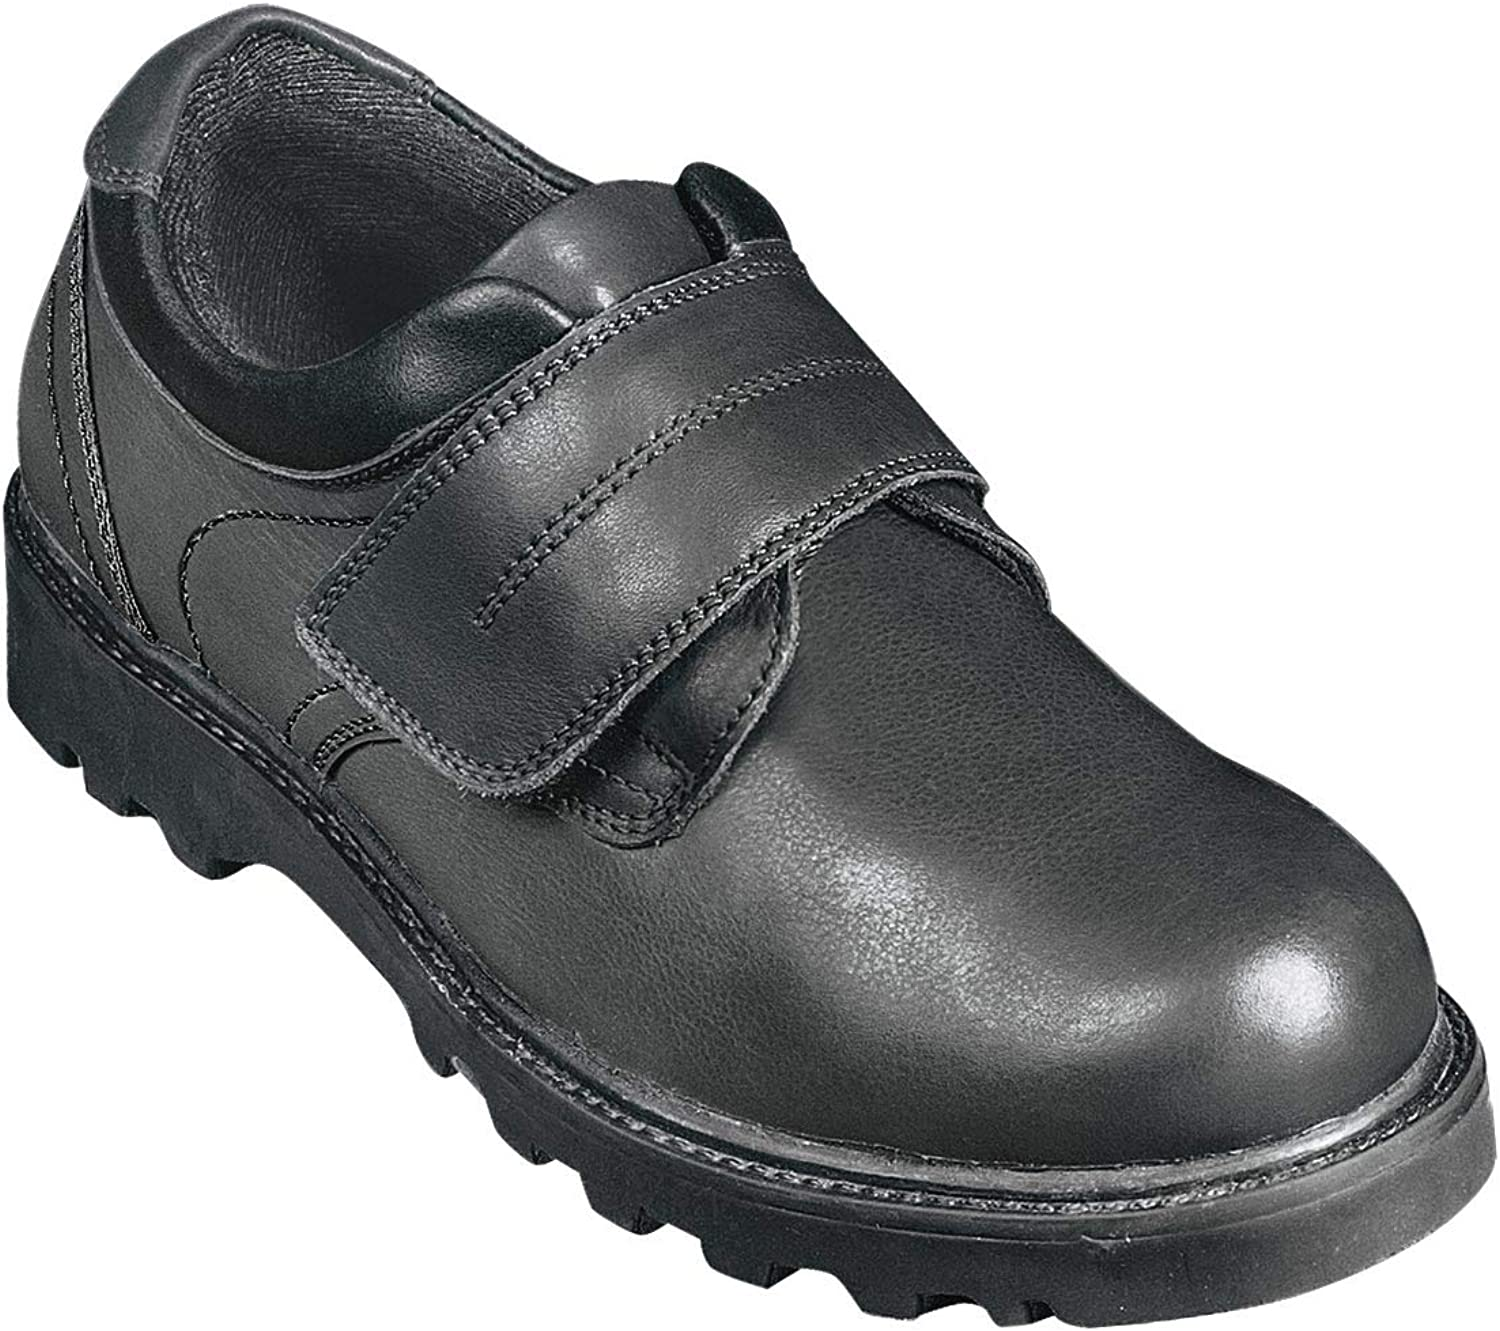 Chums Mens Real Leather Touch Fastening Walking Shoe Black 6 UK